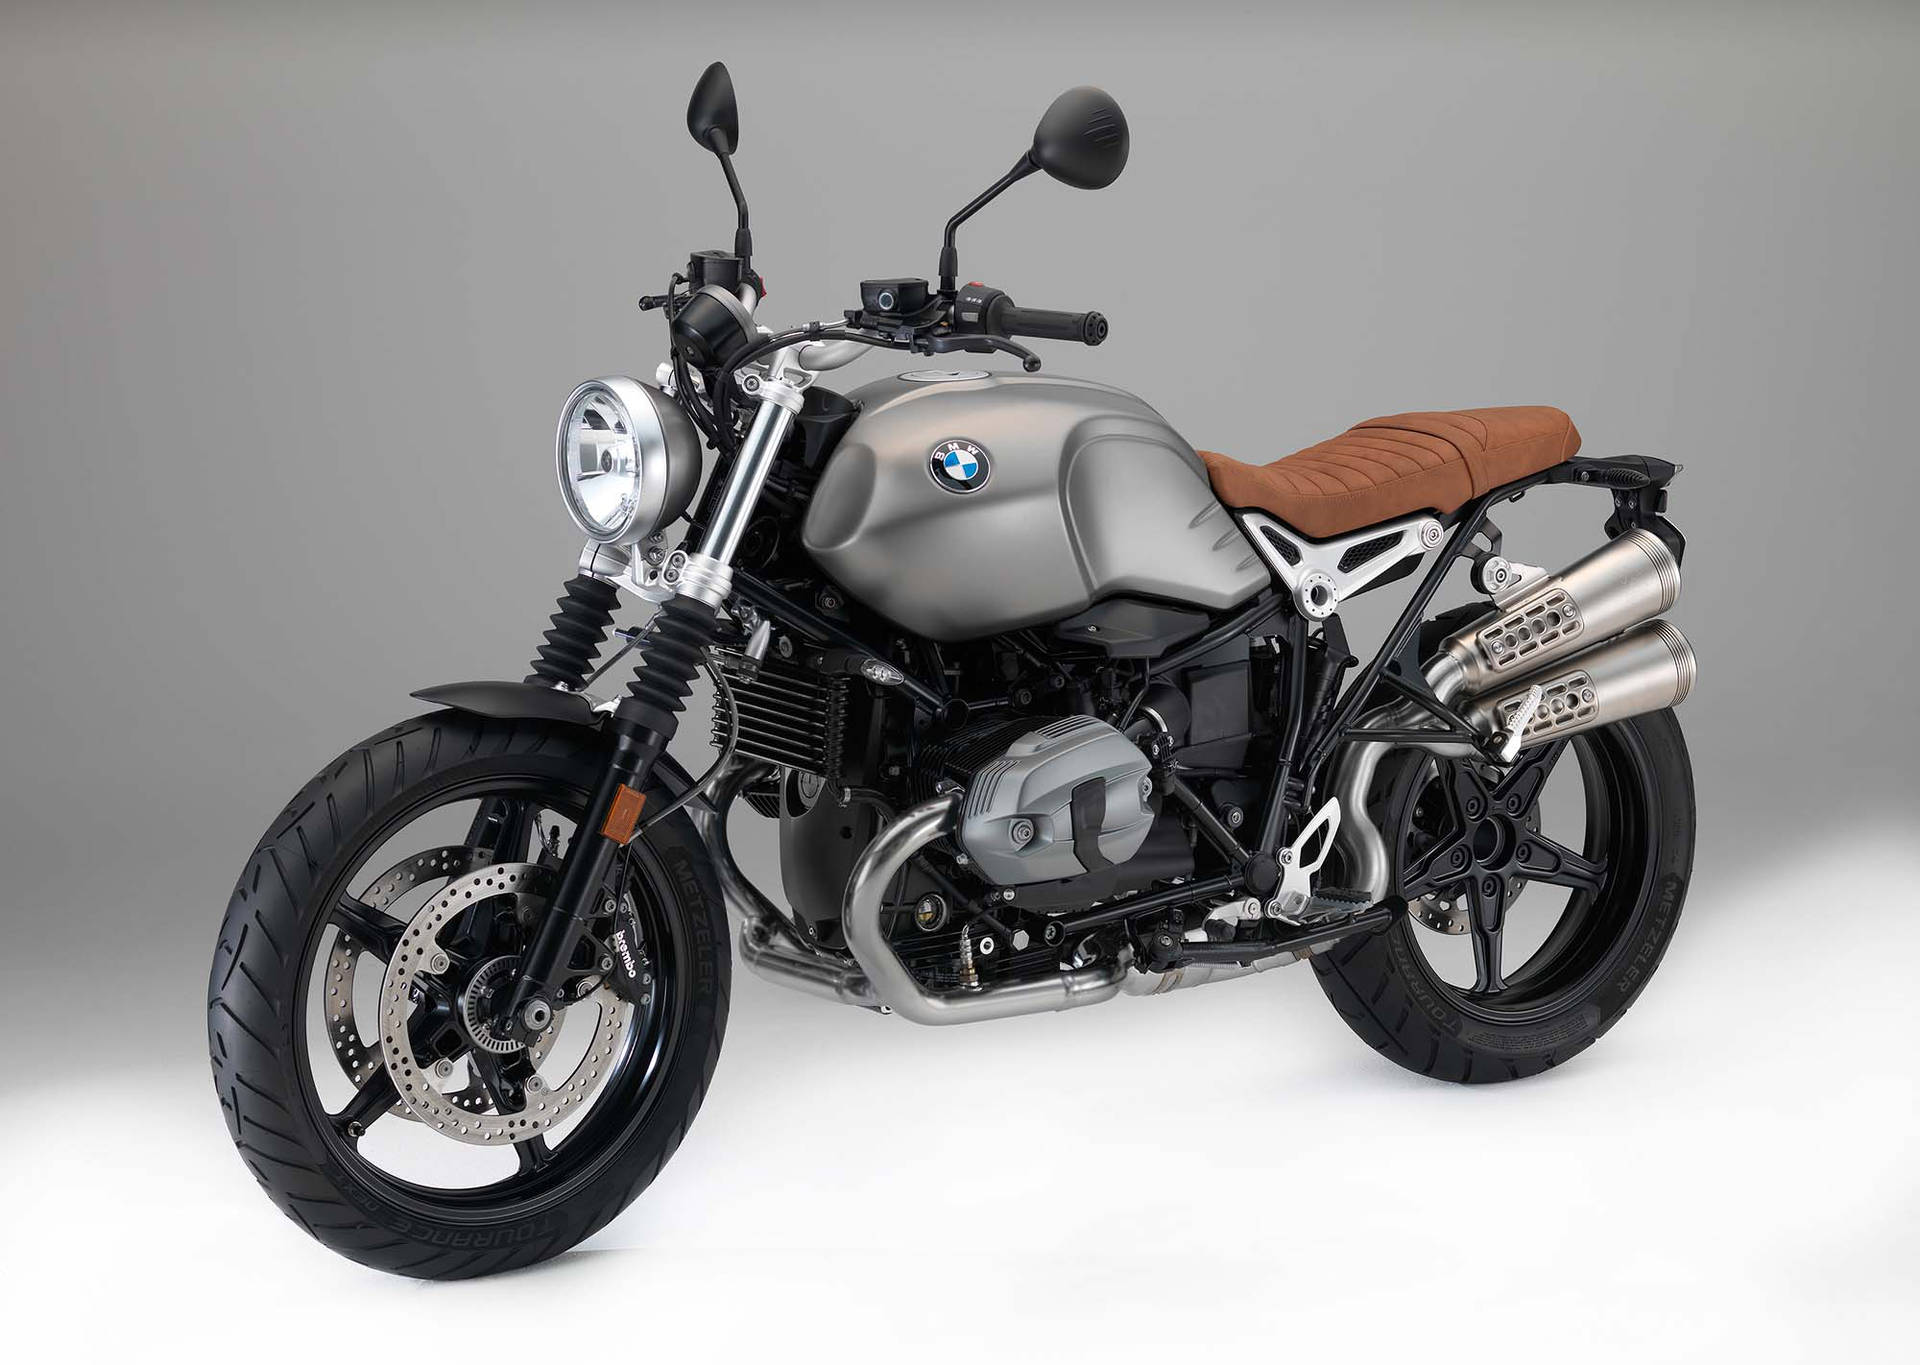 bmw unveils new r ninet scrambler. Black Bedroom Furniture Sets. Home Design Ideas